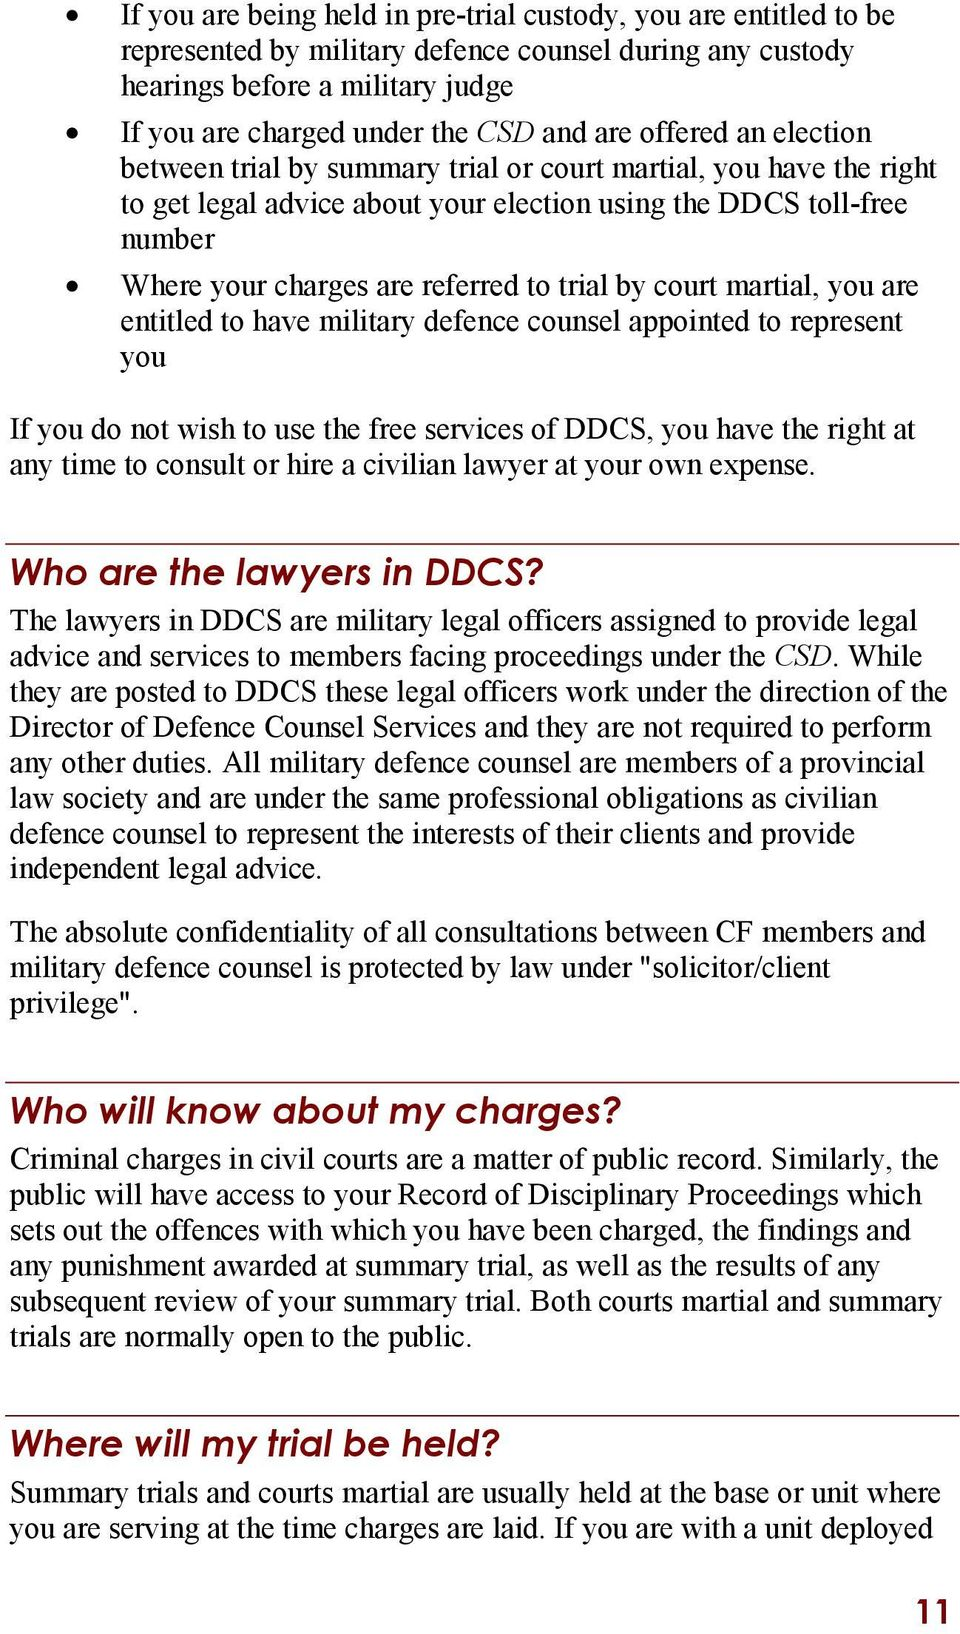 trial by court martial, you are entitled to have military defence counsel appointed to represent you If you do not wish to use the free services of DDCS, you have the right at any time to consult or